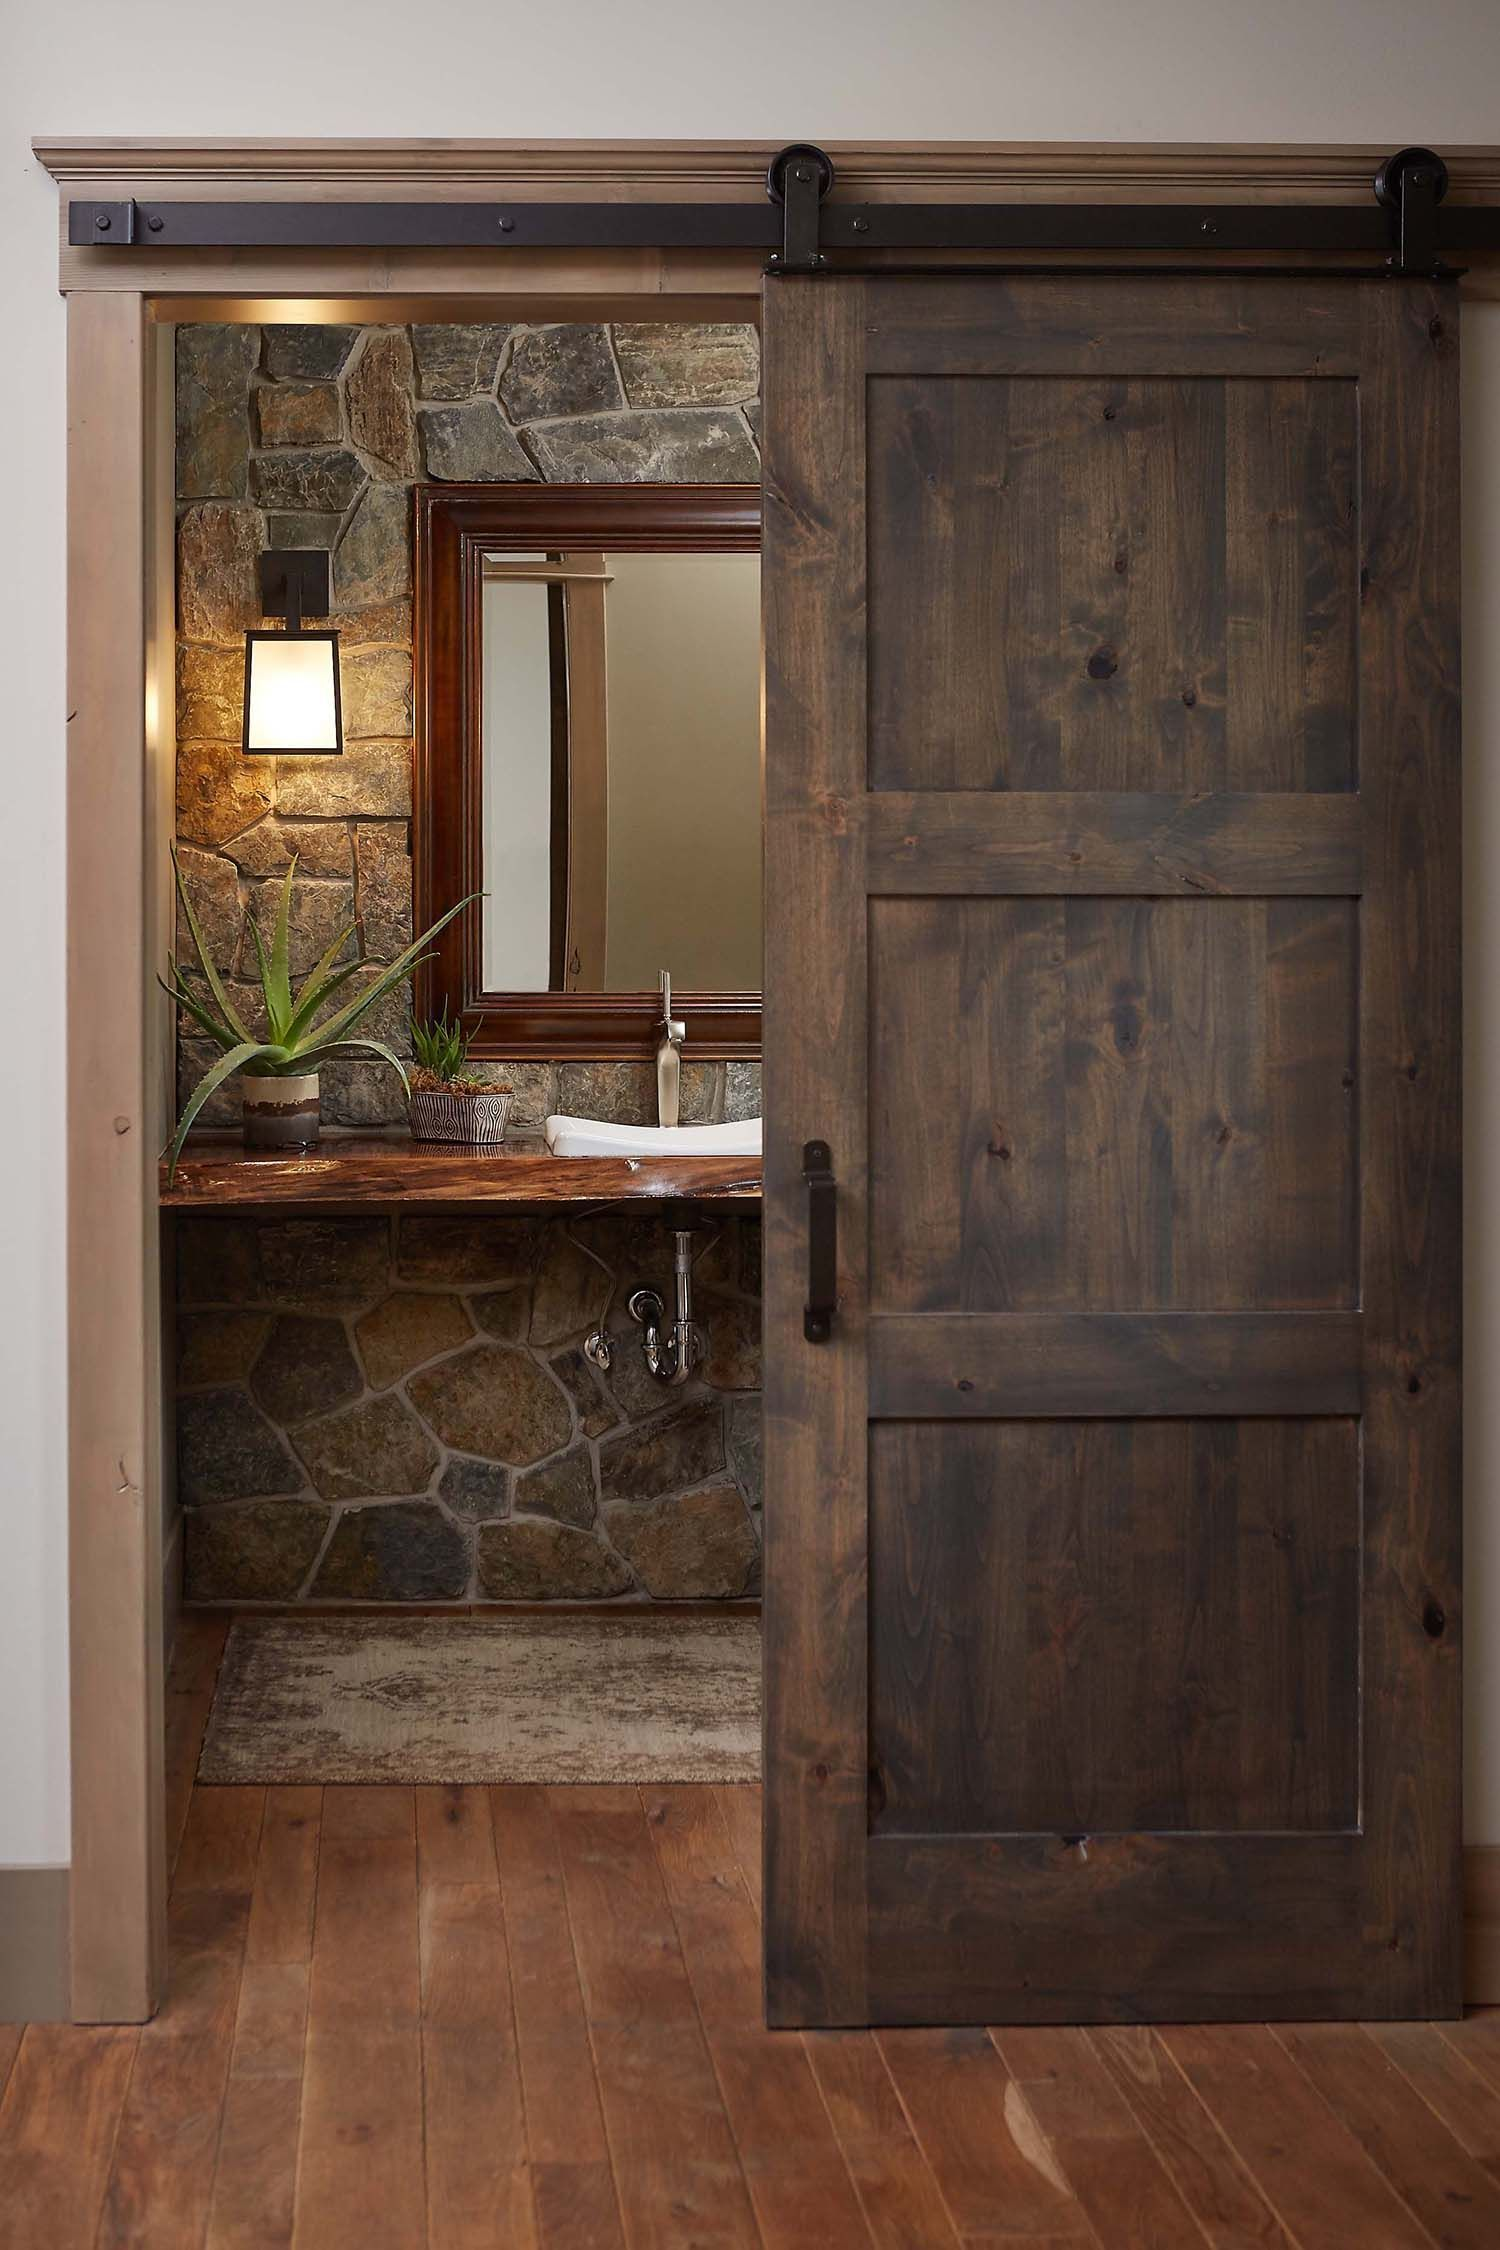 9 Secret Advice To Make An Outstanding Home Bathroom Remodel #modernrusticbedroom Find more ideas: Home Kitchen Improvement Decor Ideas Home Bathroom Flooring Improvement Home Bedroom Painting Improvement DIY Home Living Room Improvement Garage Home Hacks Improvement Tips #homedecor #homedecorideas #remodel #remodeling #remodelaholic #interiordesign #rusticporchideas